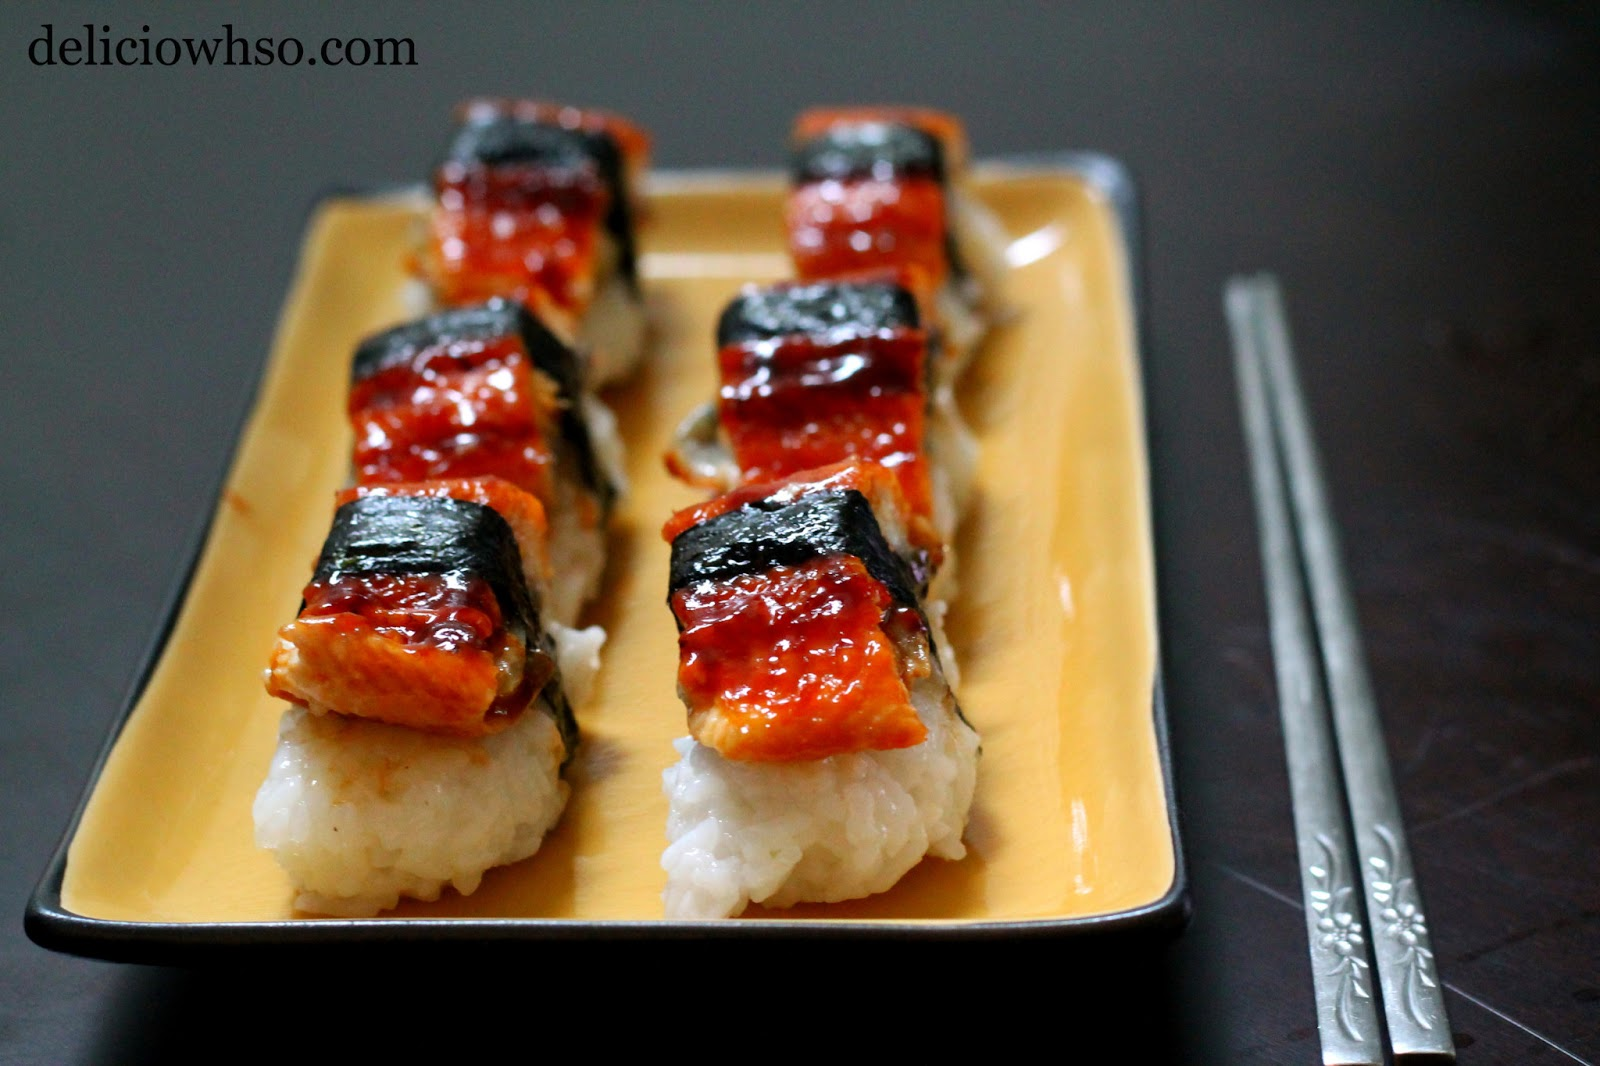 DELICI-OWH-SO: Sushi